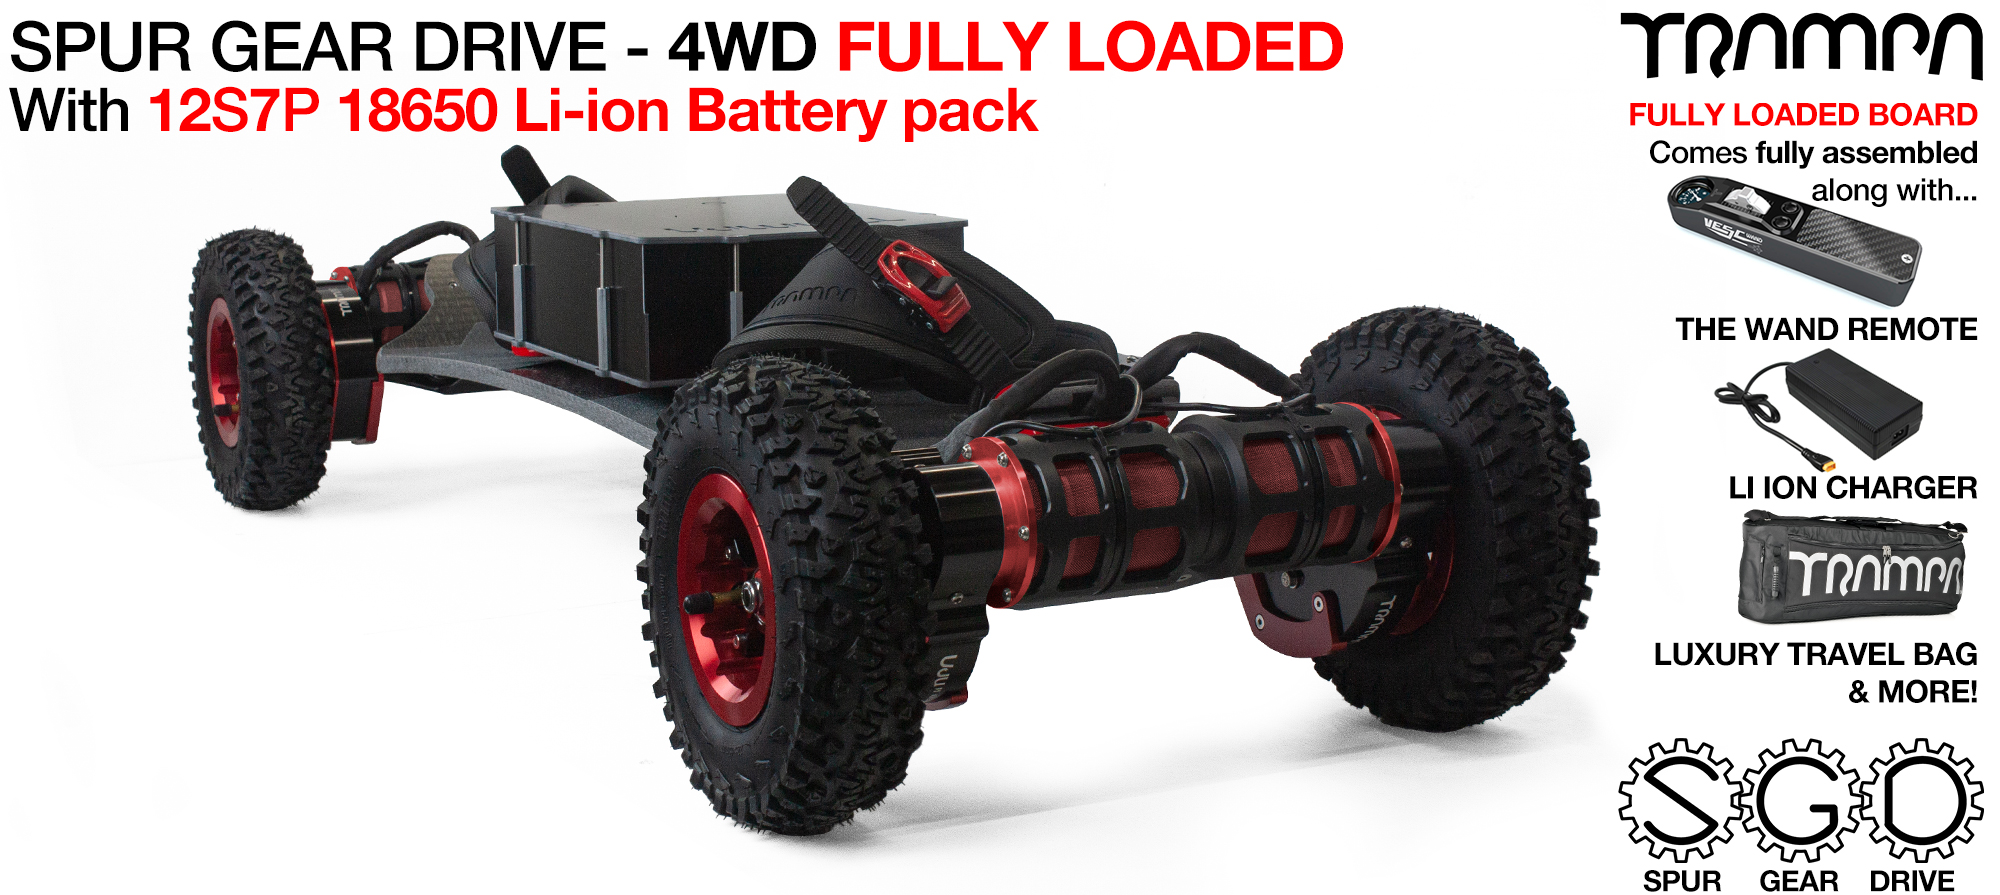 4WD SPUR GEAR DRIVE BIGBOI & Battery pack TRAMPA Electric Mountainboard - FULLY LOADED